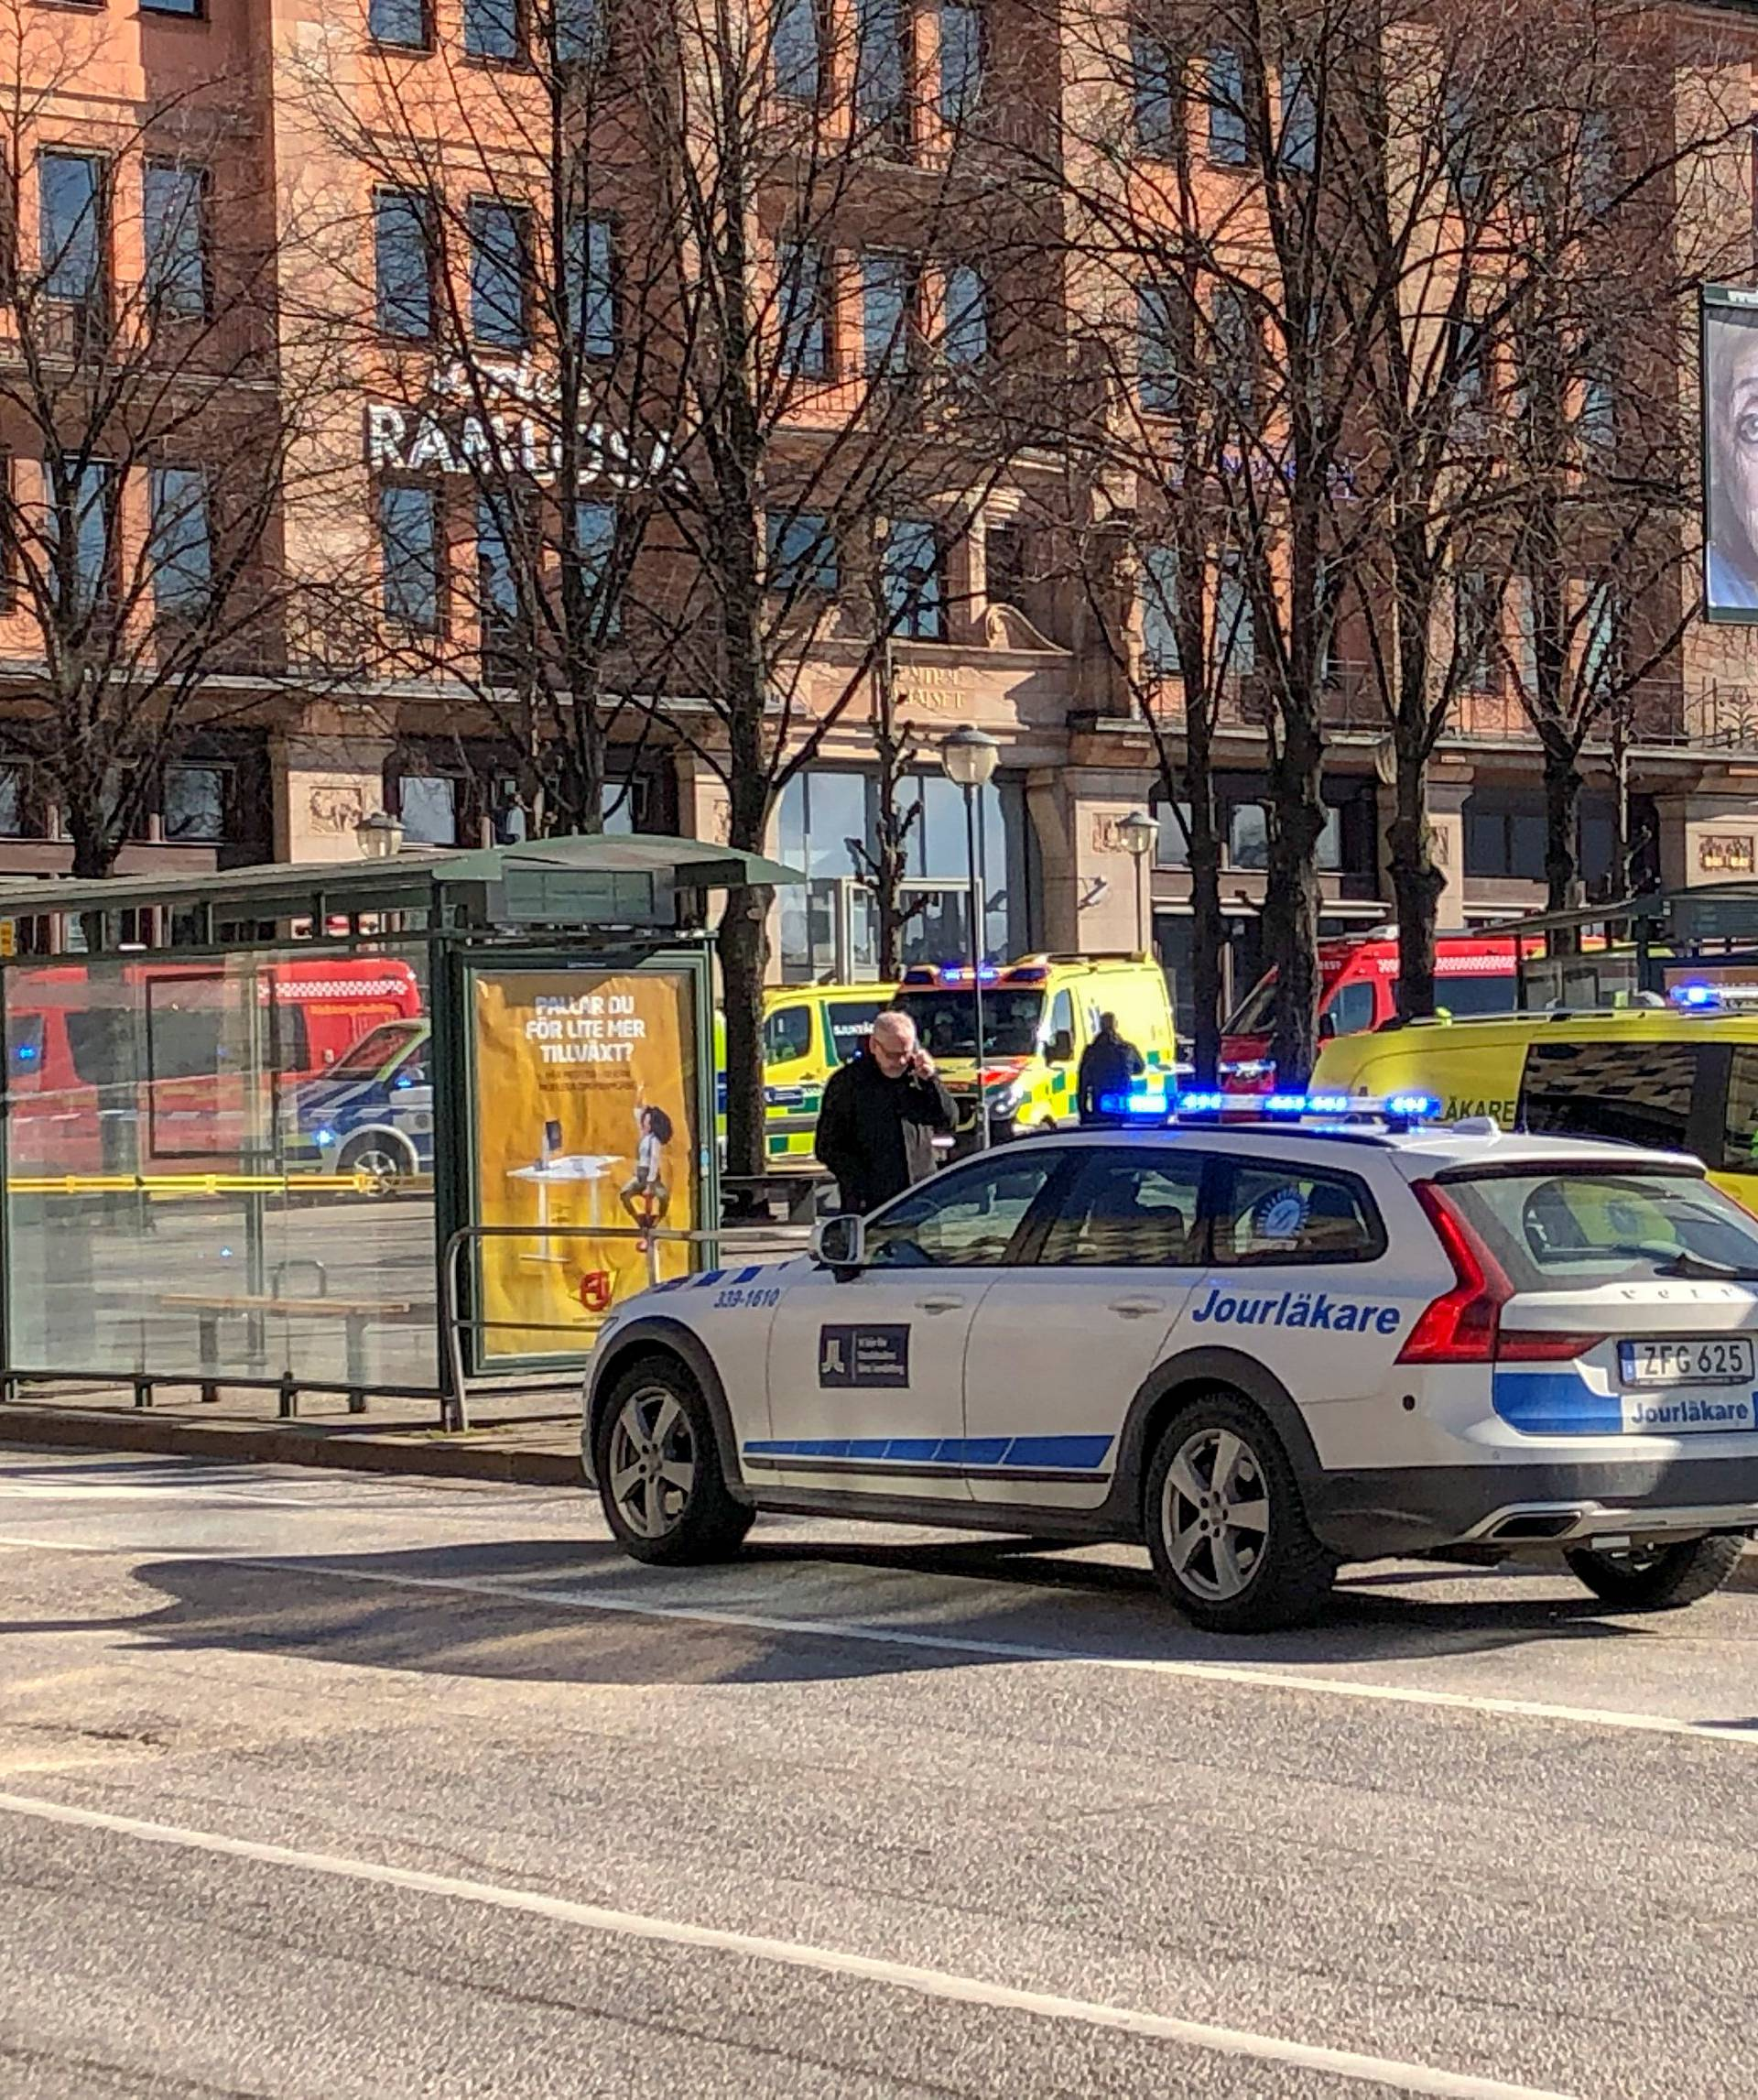 Emergency services are seen after a bus exploded and caught fire in Tegelbacken in central Stockholm